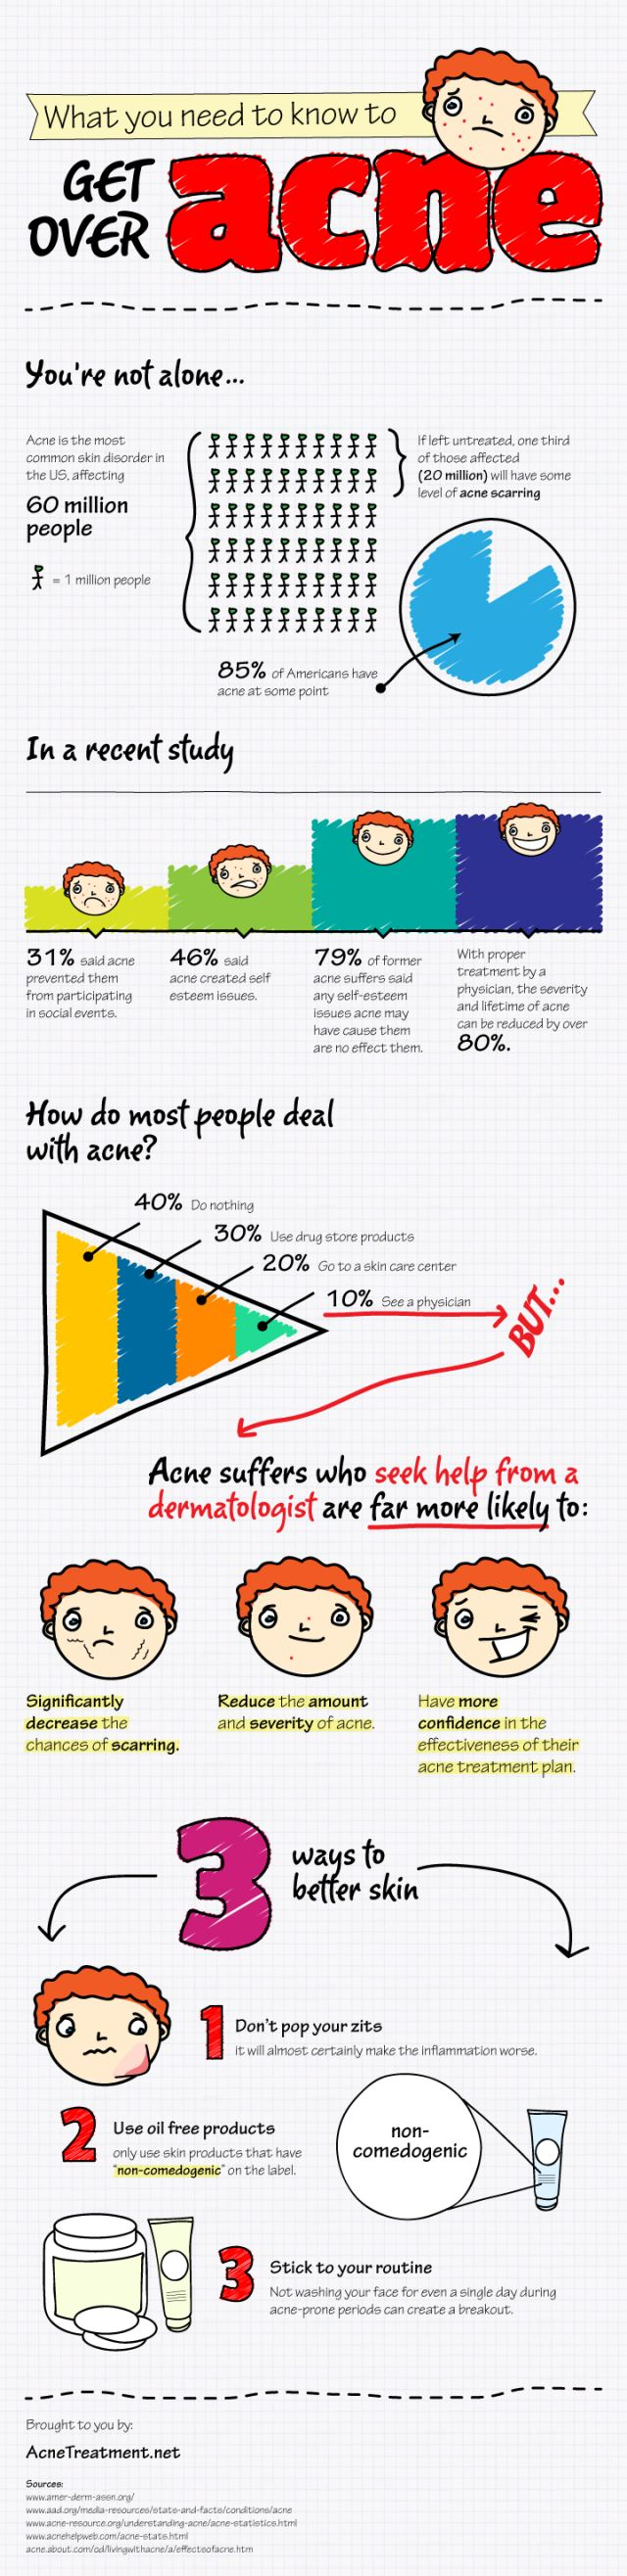 So if you have bad acne, the advice is: go to the doctor (infographic).